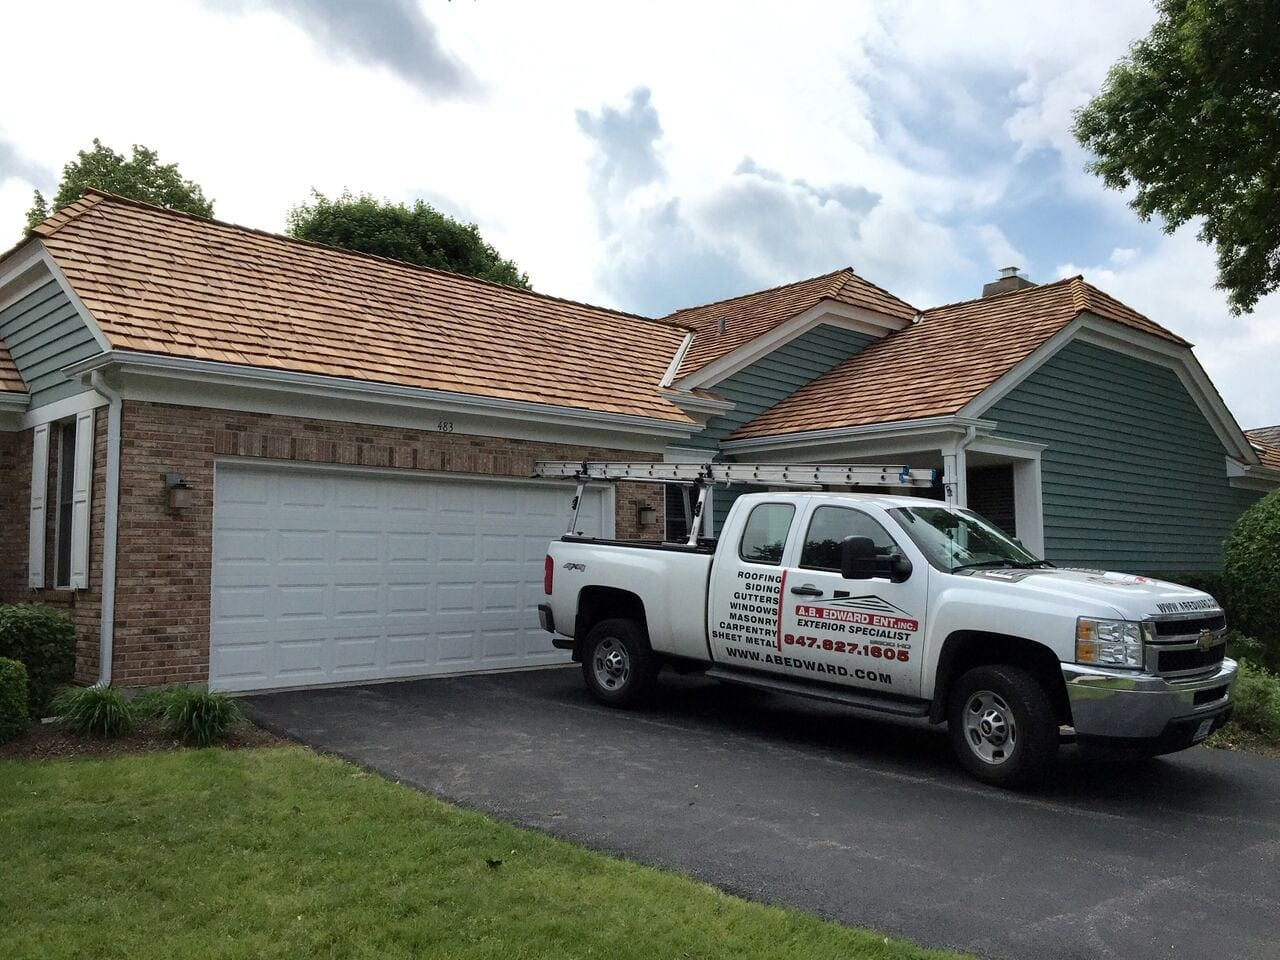 Get a roofing inspection to keep your roof healthy